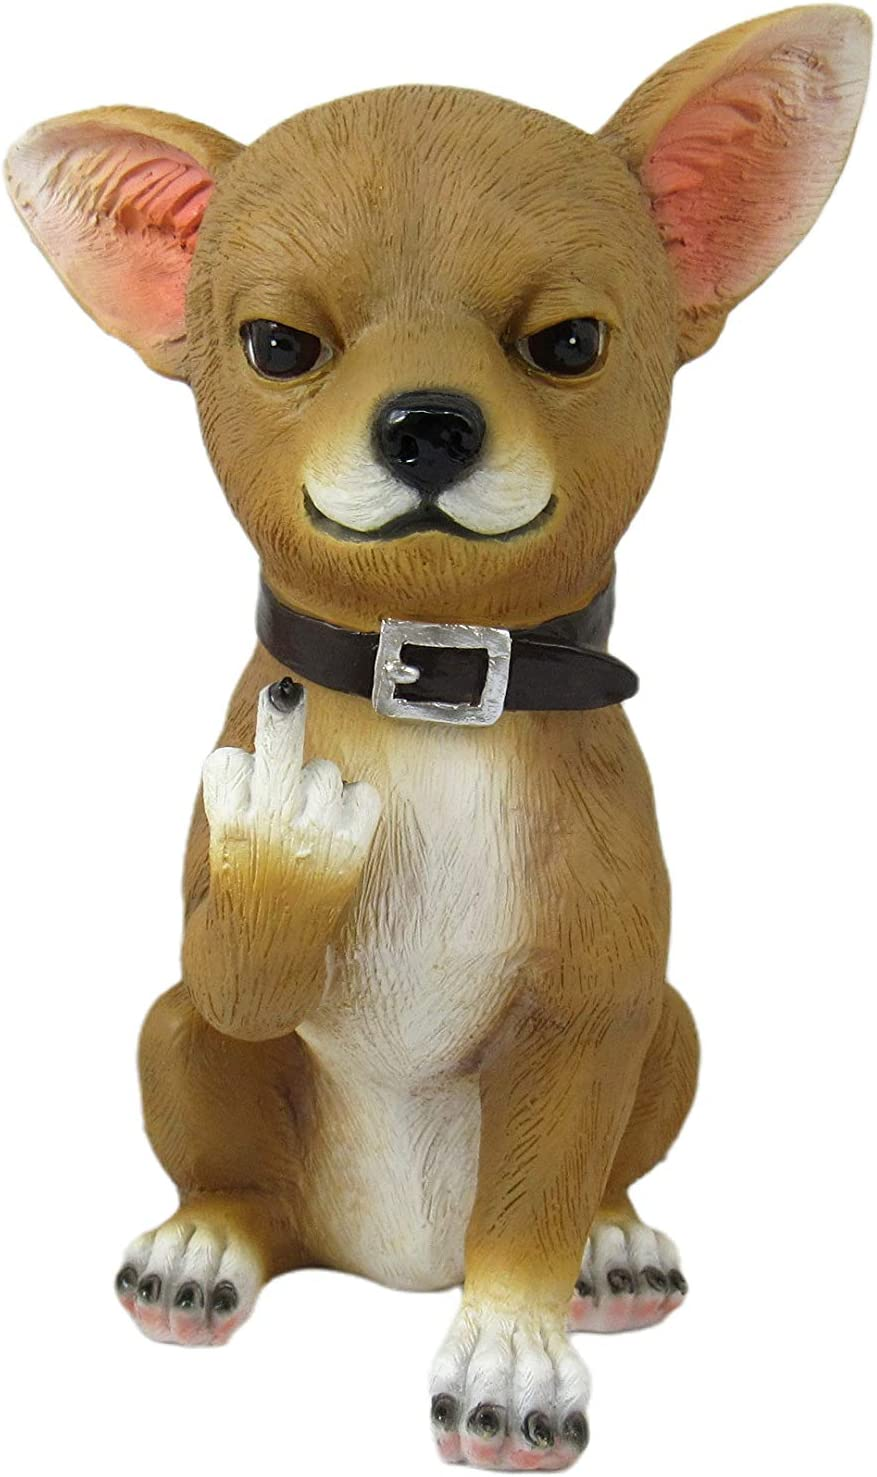 DWK Lil' Rascal Middle Finger Chihuahua Dog Statue | Décor for Home or Office Desk | Gifts for Chihuahua Lovers | Front Porch Greeting Statue - 6.75